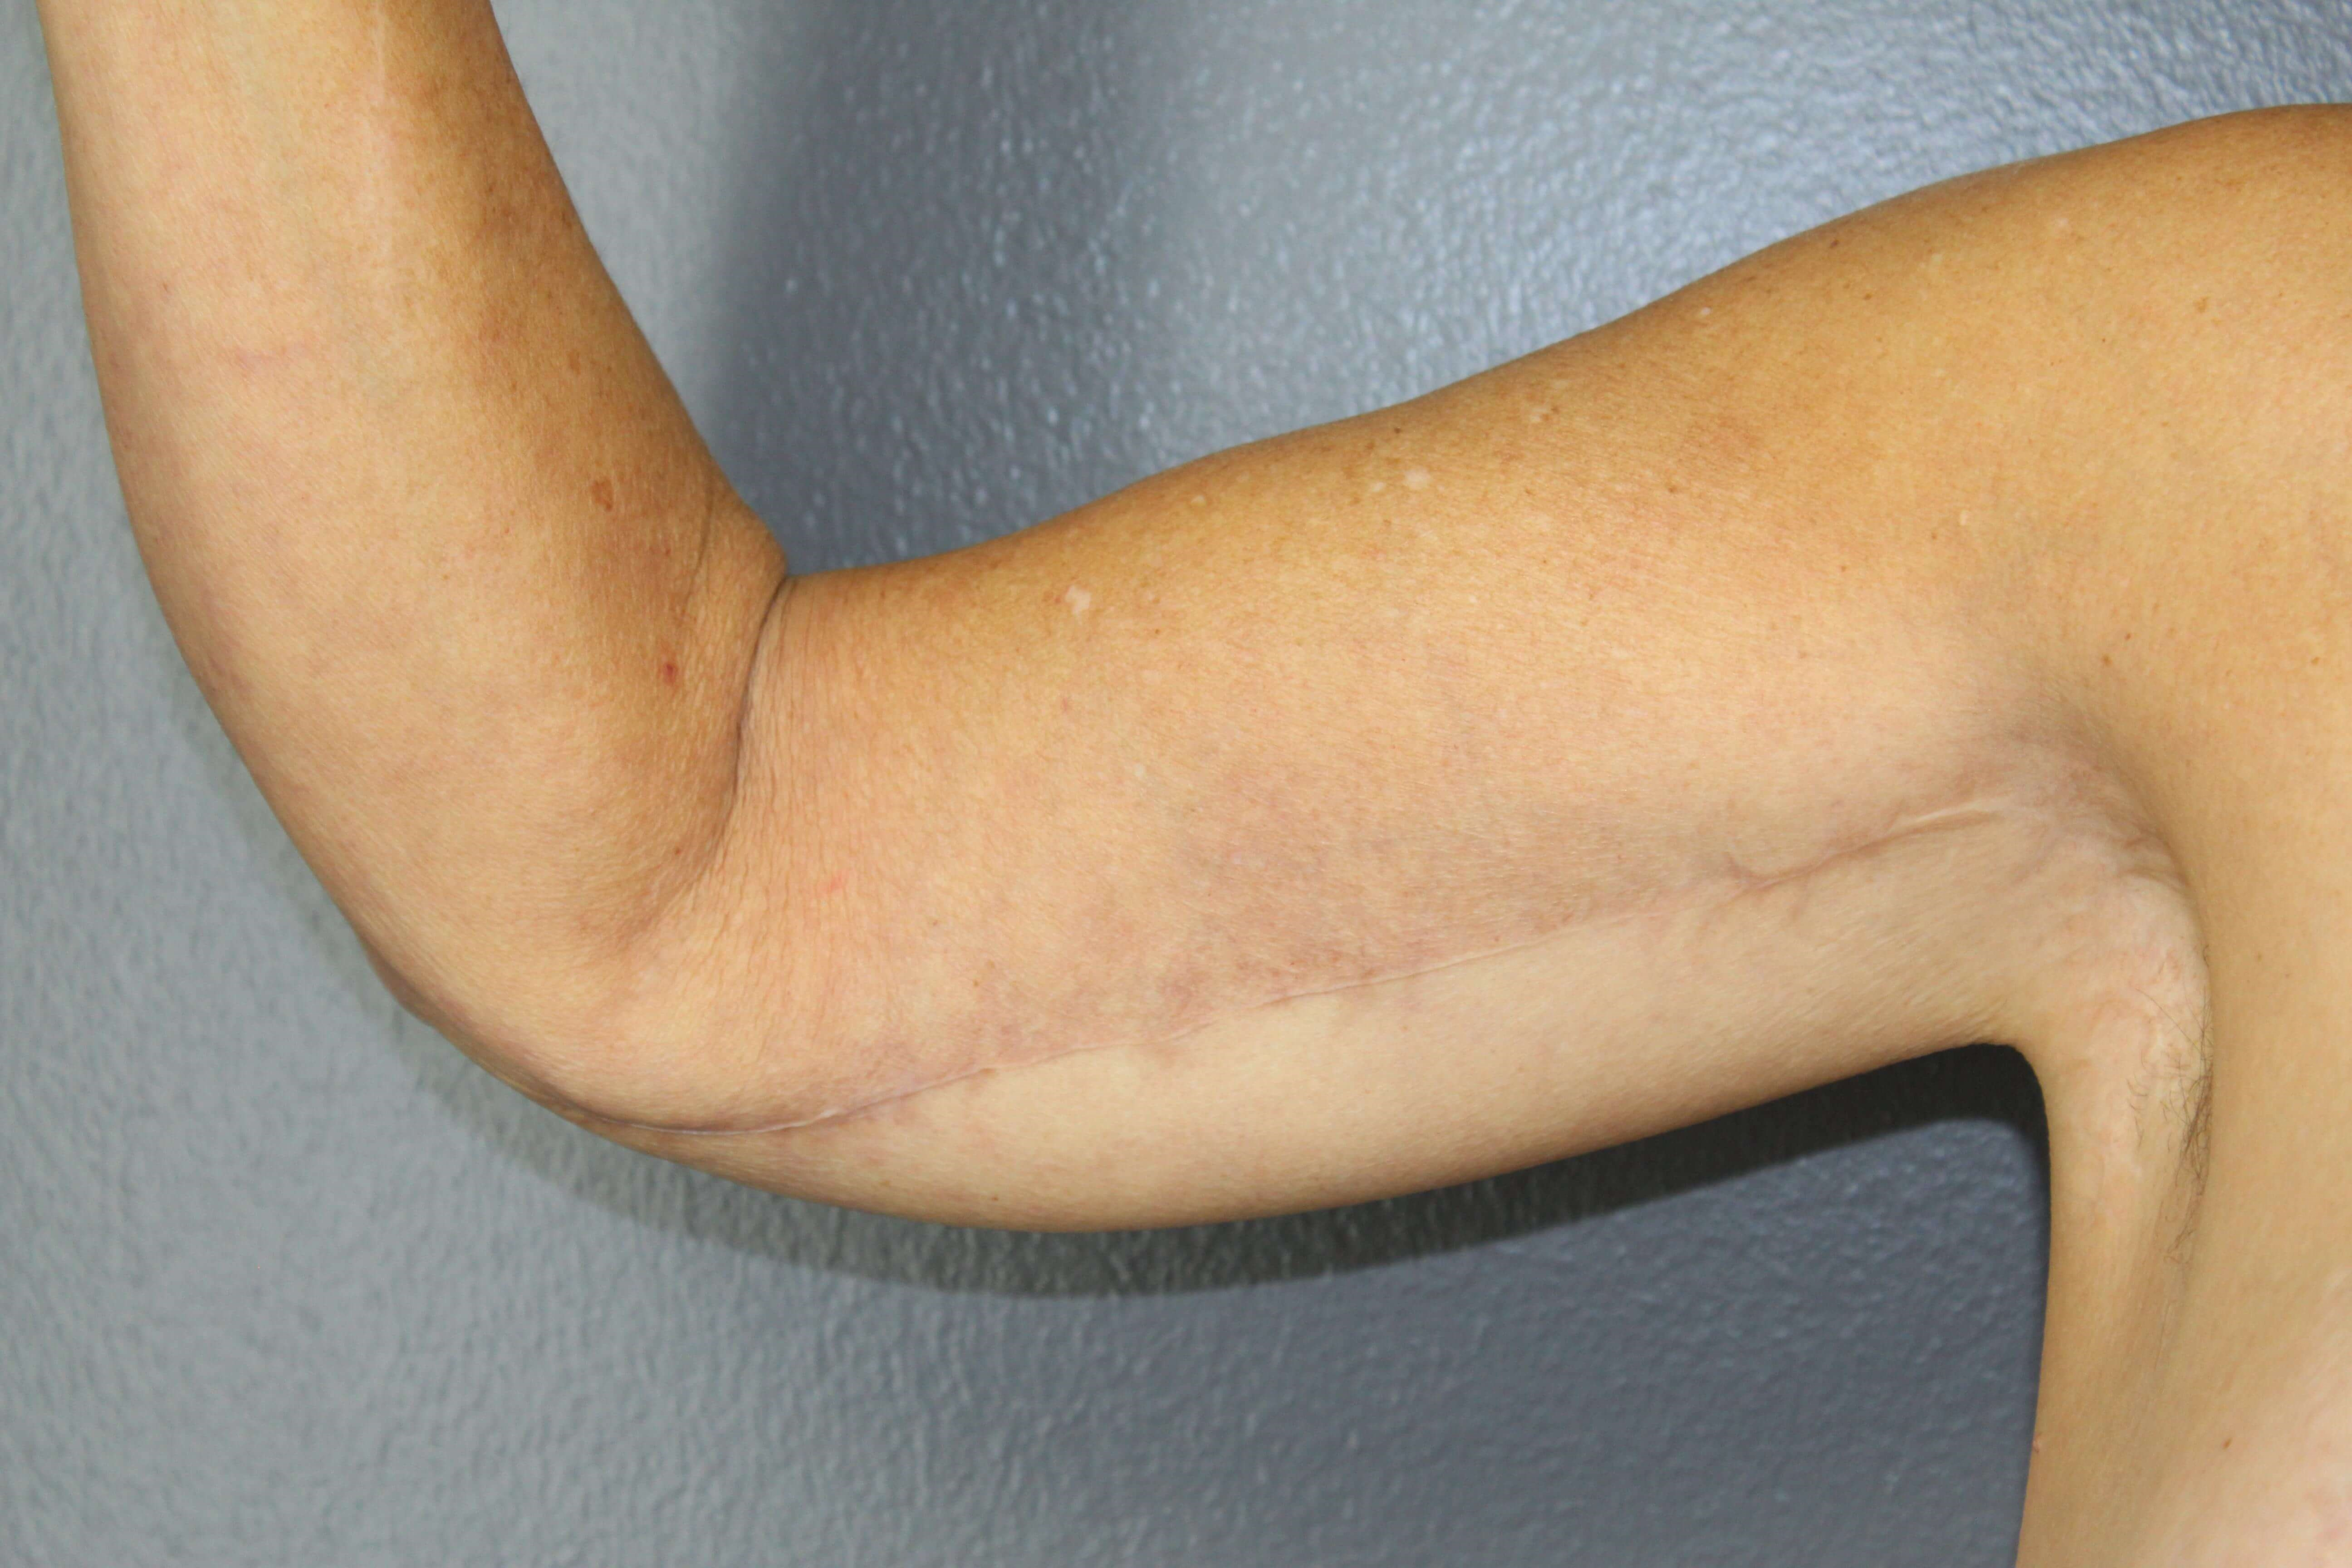 2b52b3888f Loose Skin On The Upper Arm - Year of Clean Water